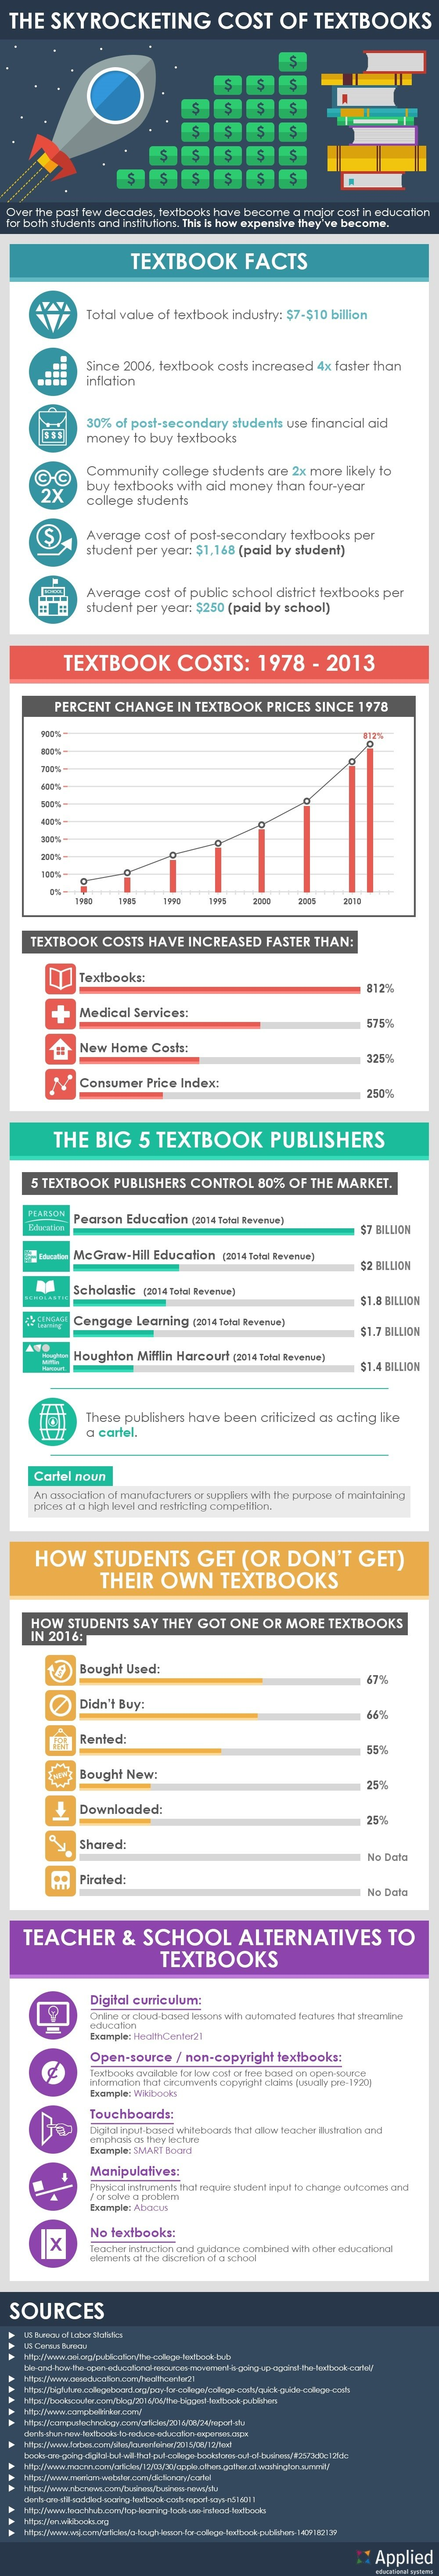 infographic-skyrocketing-cost-of-textbooks